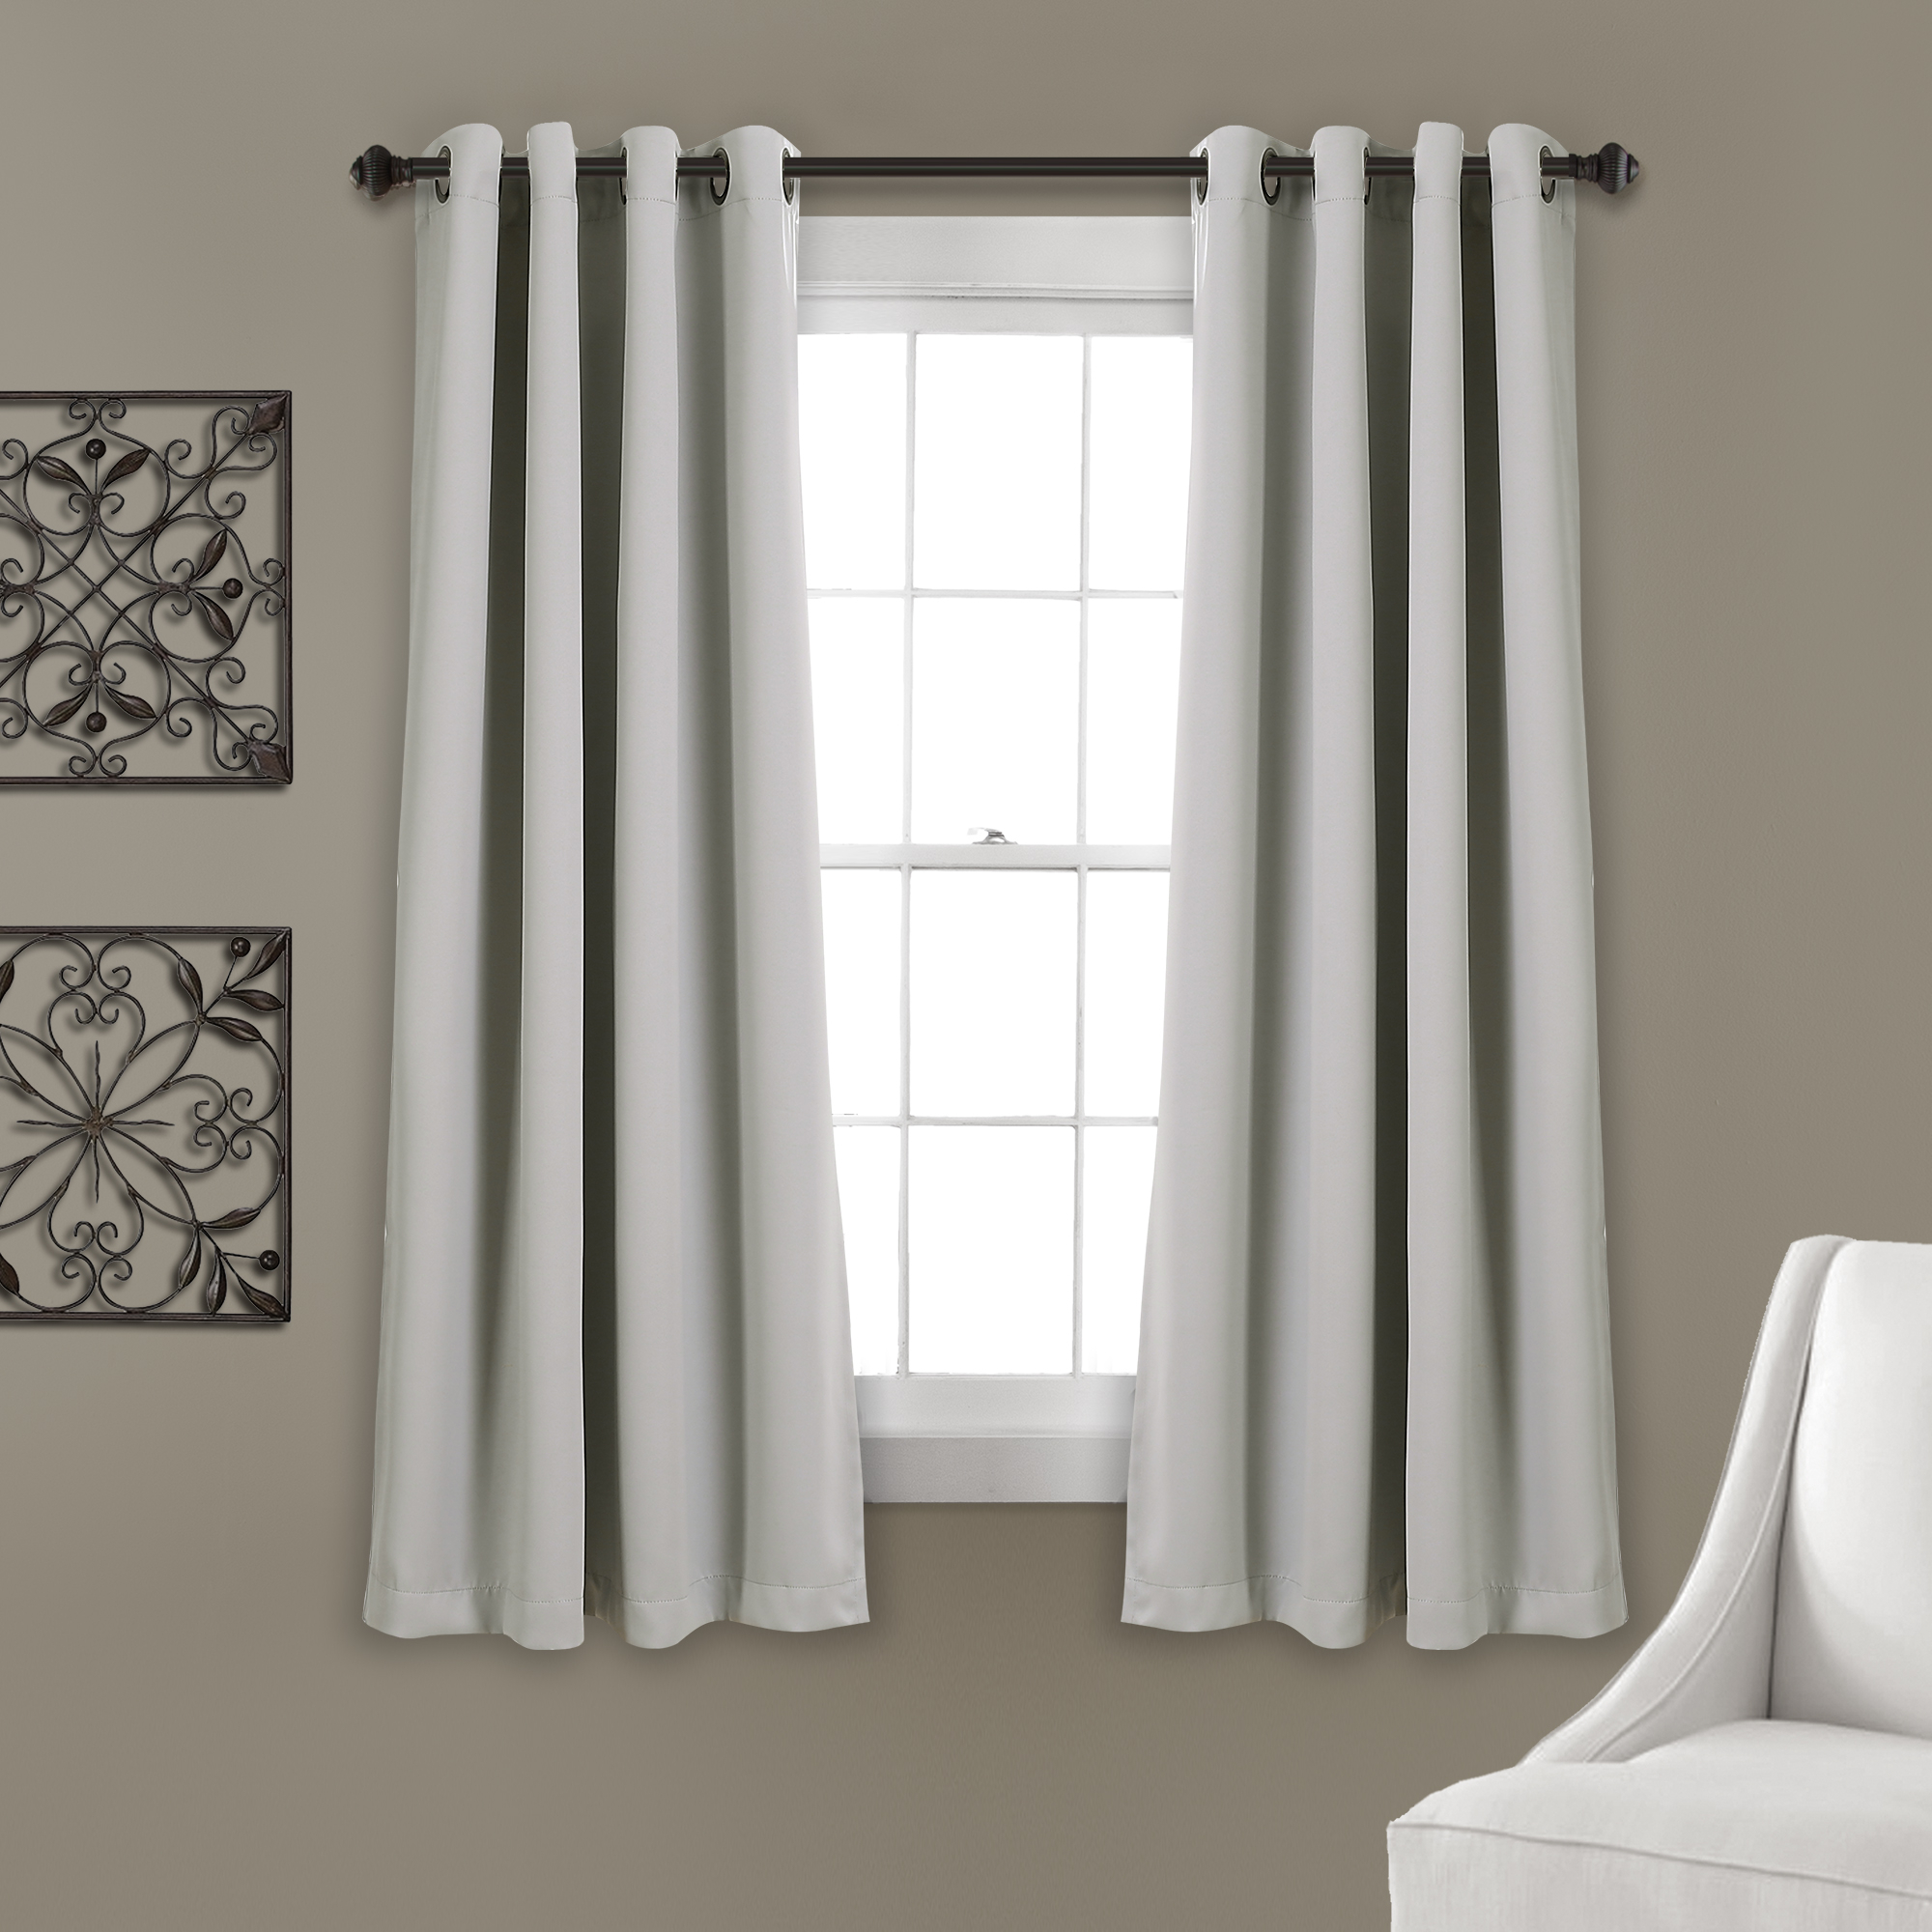 Trendy Insulated Grommet Blackout Curtain Panel Pairs Pertaining To Details About Lush Dcor Insulated Grommet Blackout Curtain Panels Pink Pair Set 52X (View 20 of 20)